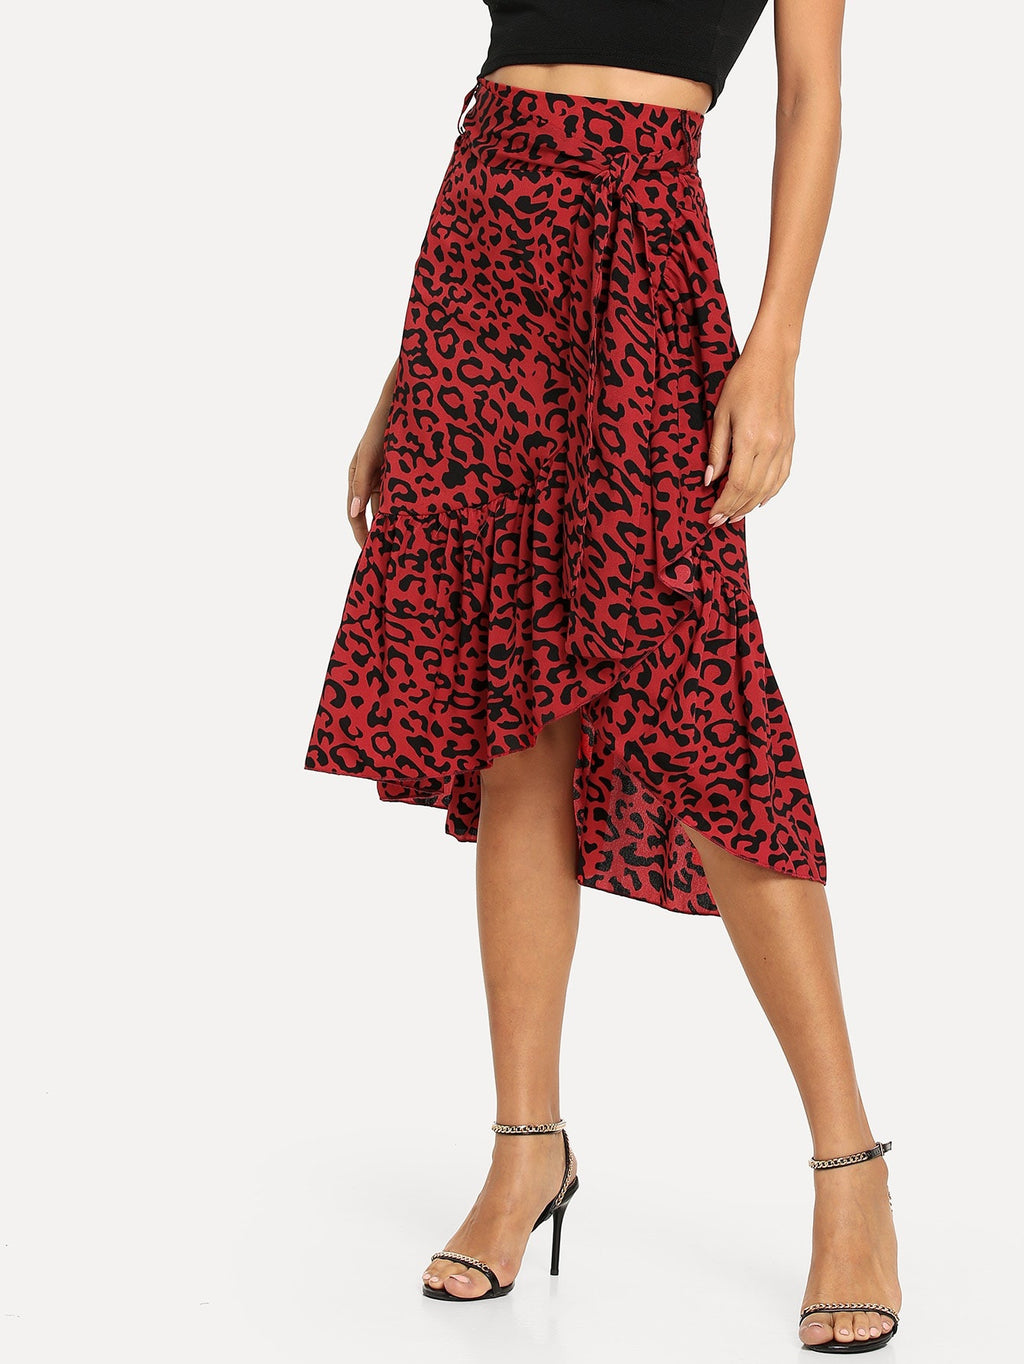 Jade red leopard print skirt